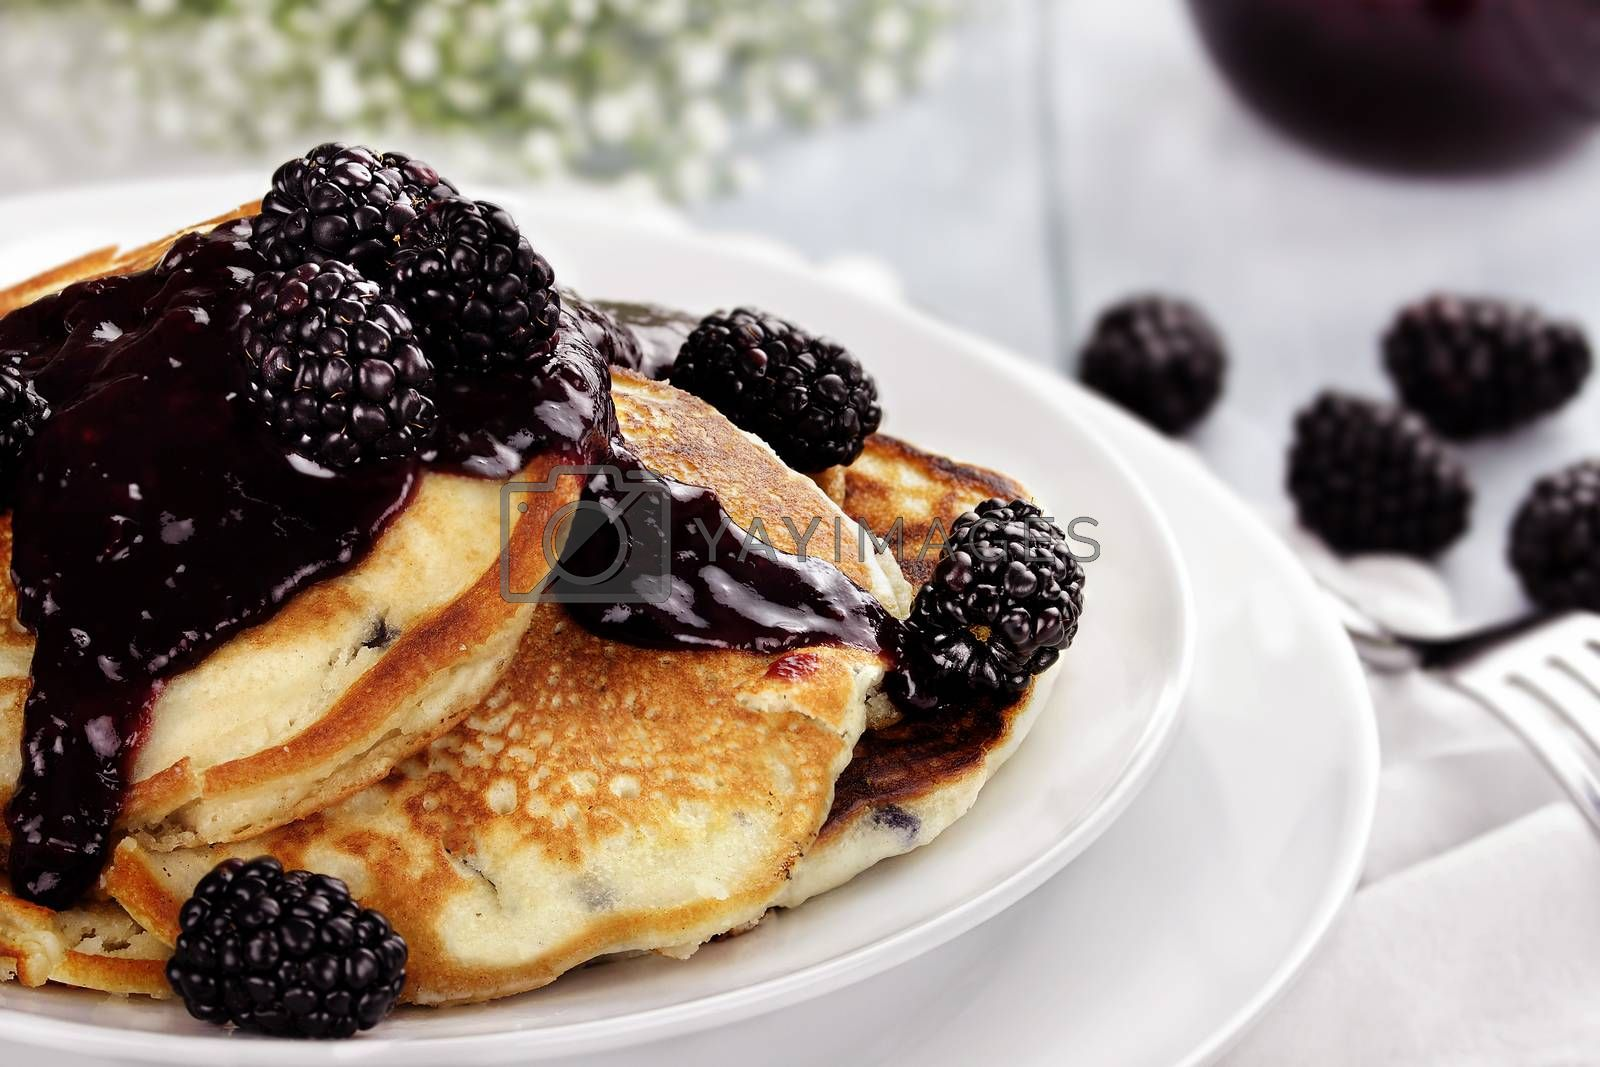 Royalty free image of Pancakes and Blackberries by StephanieFrey